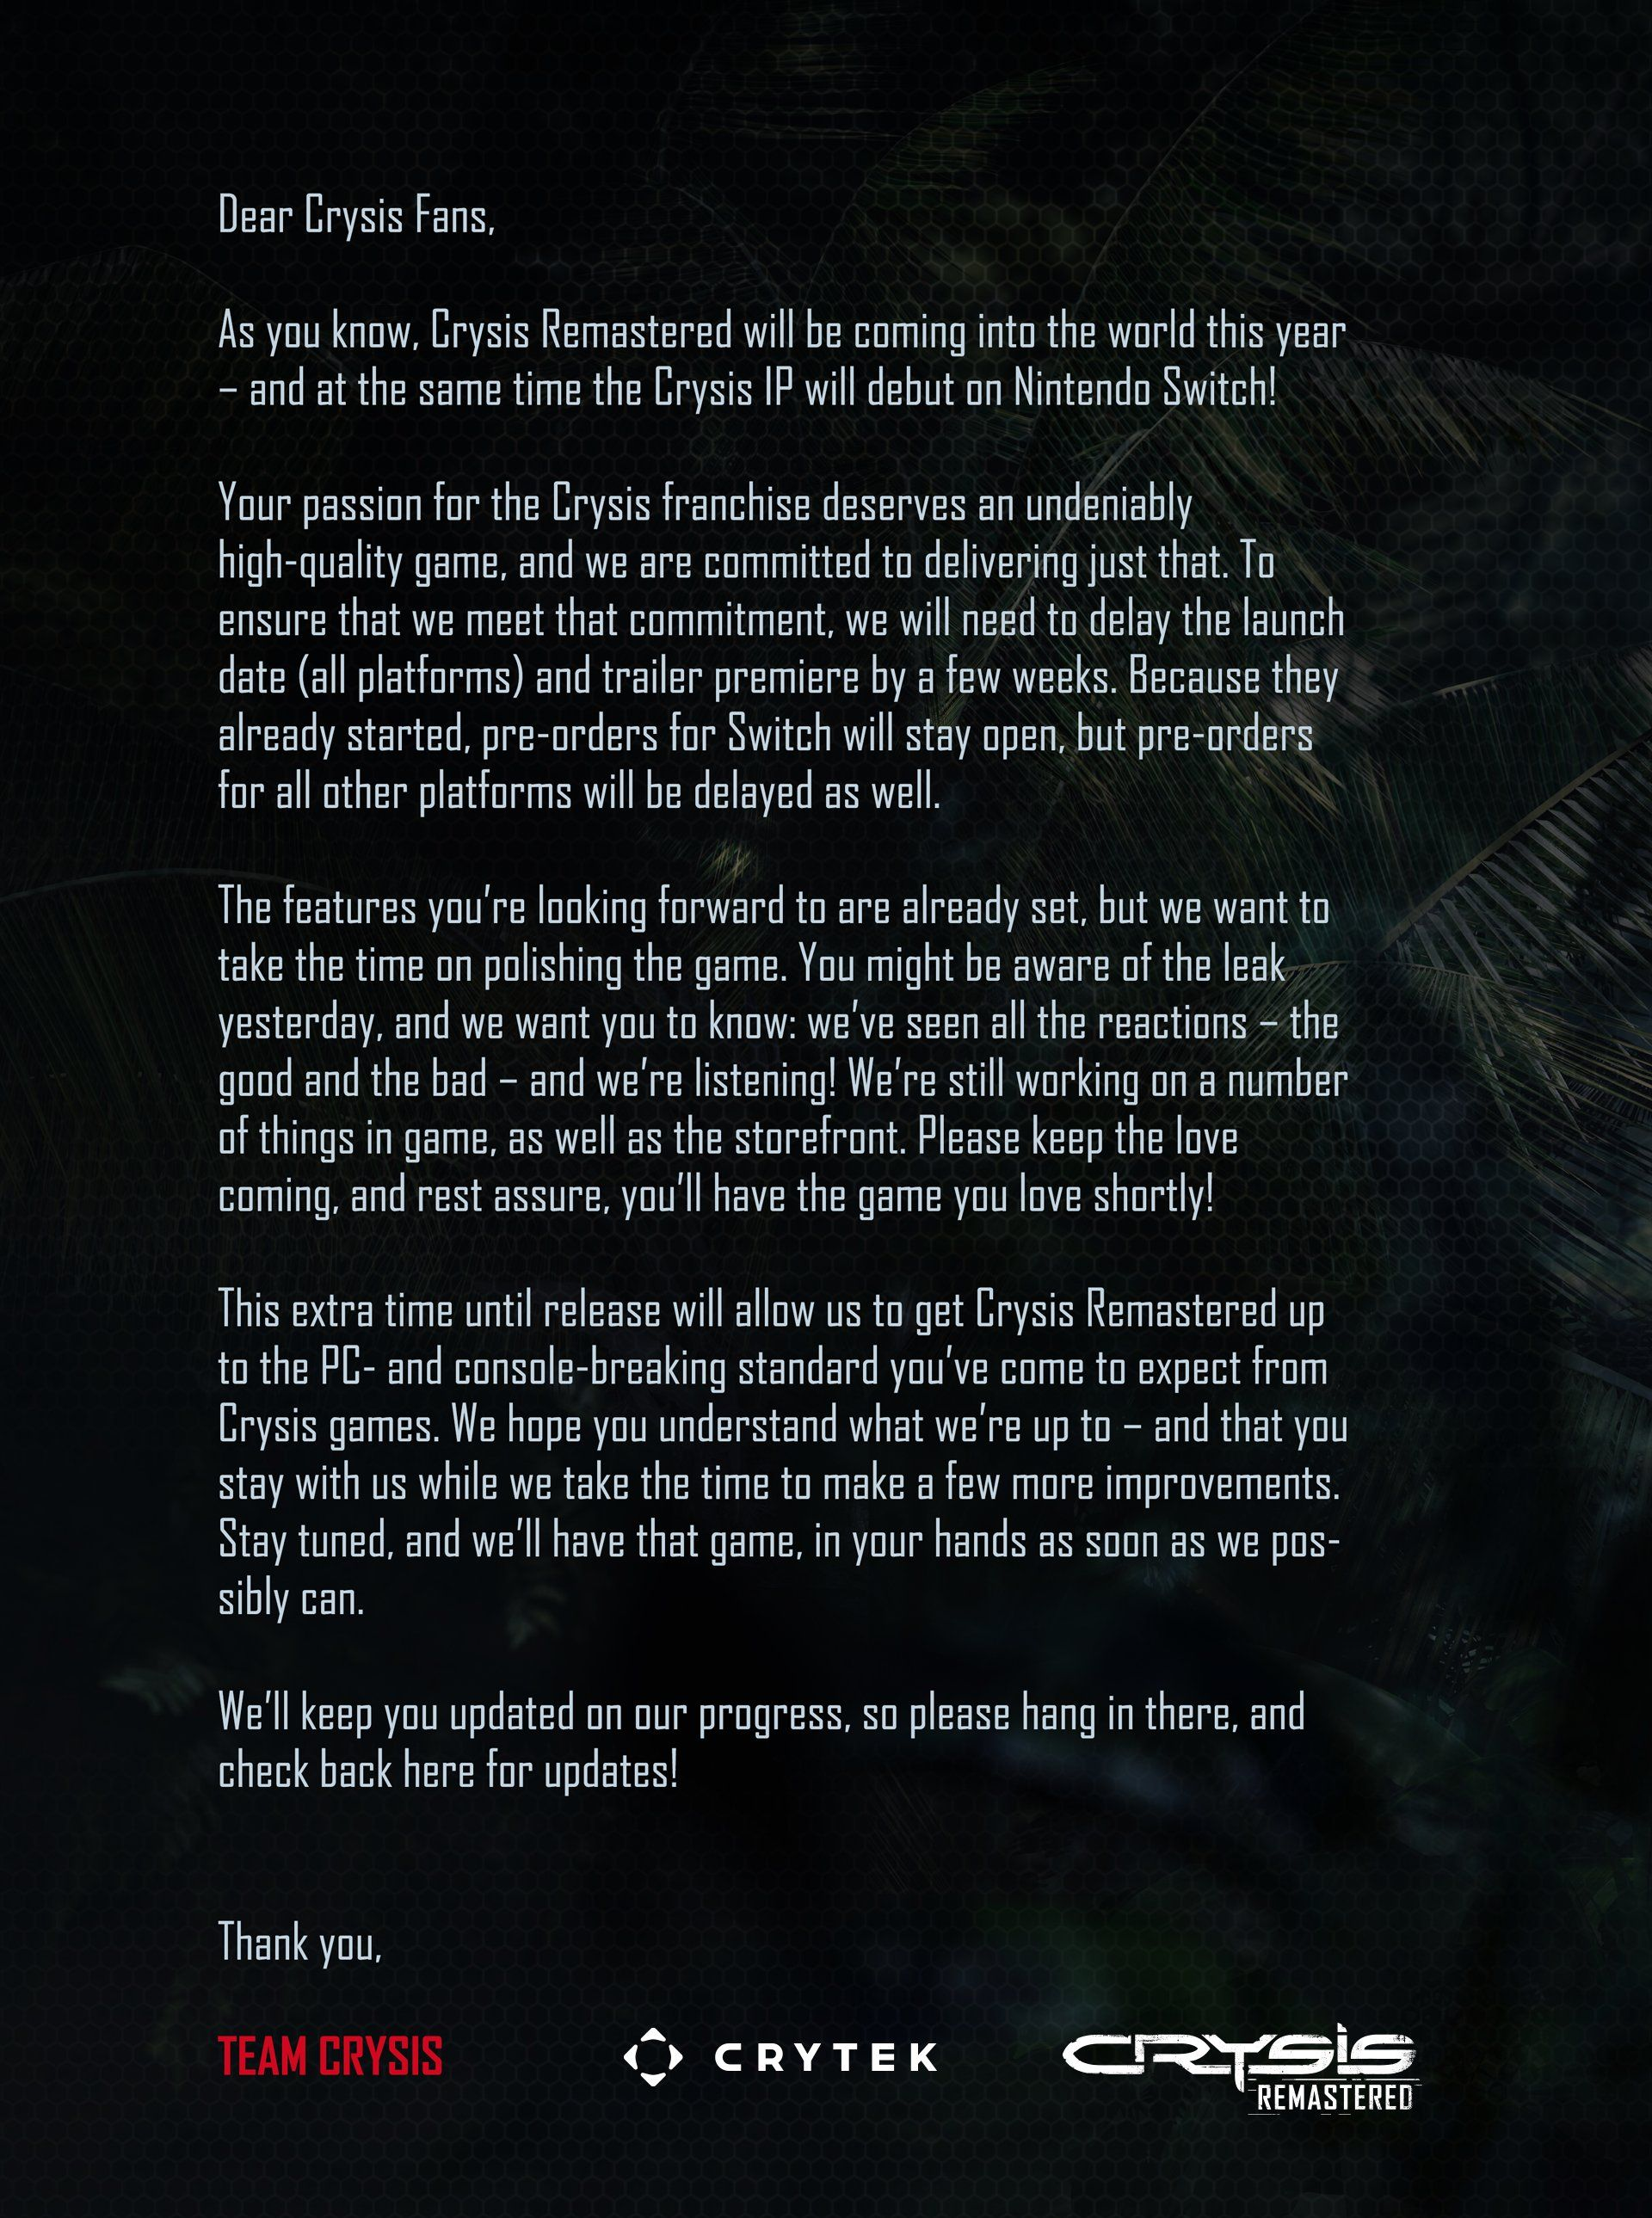 Crytek Delays Crysis Remastered for Quality Assurance in